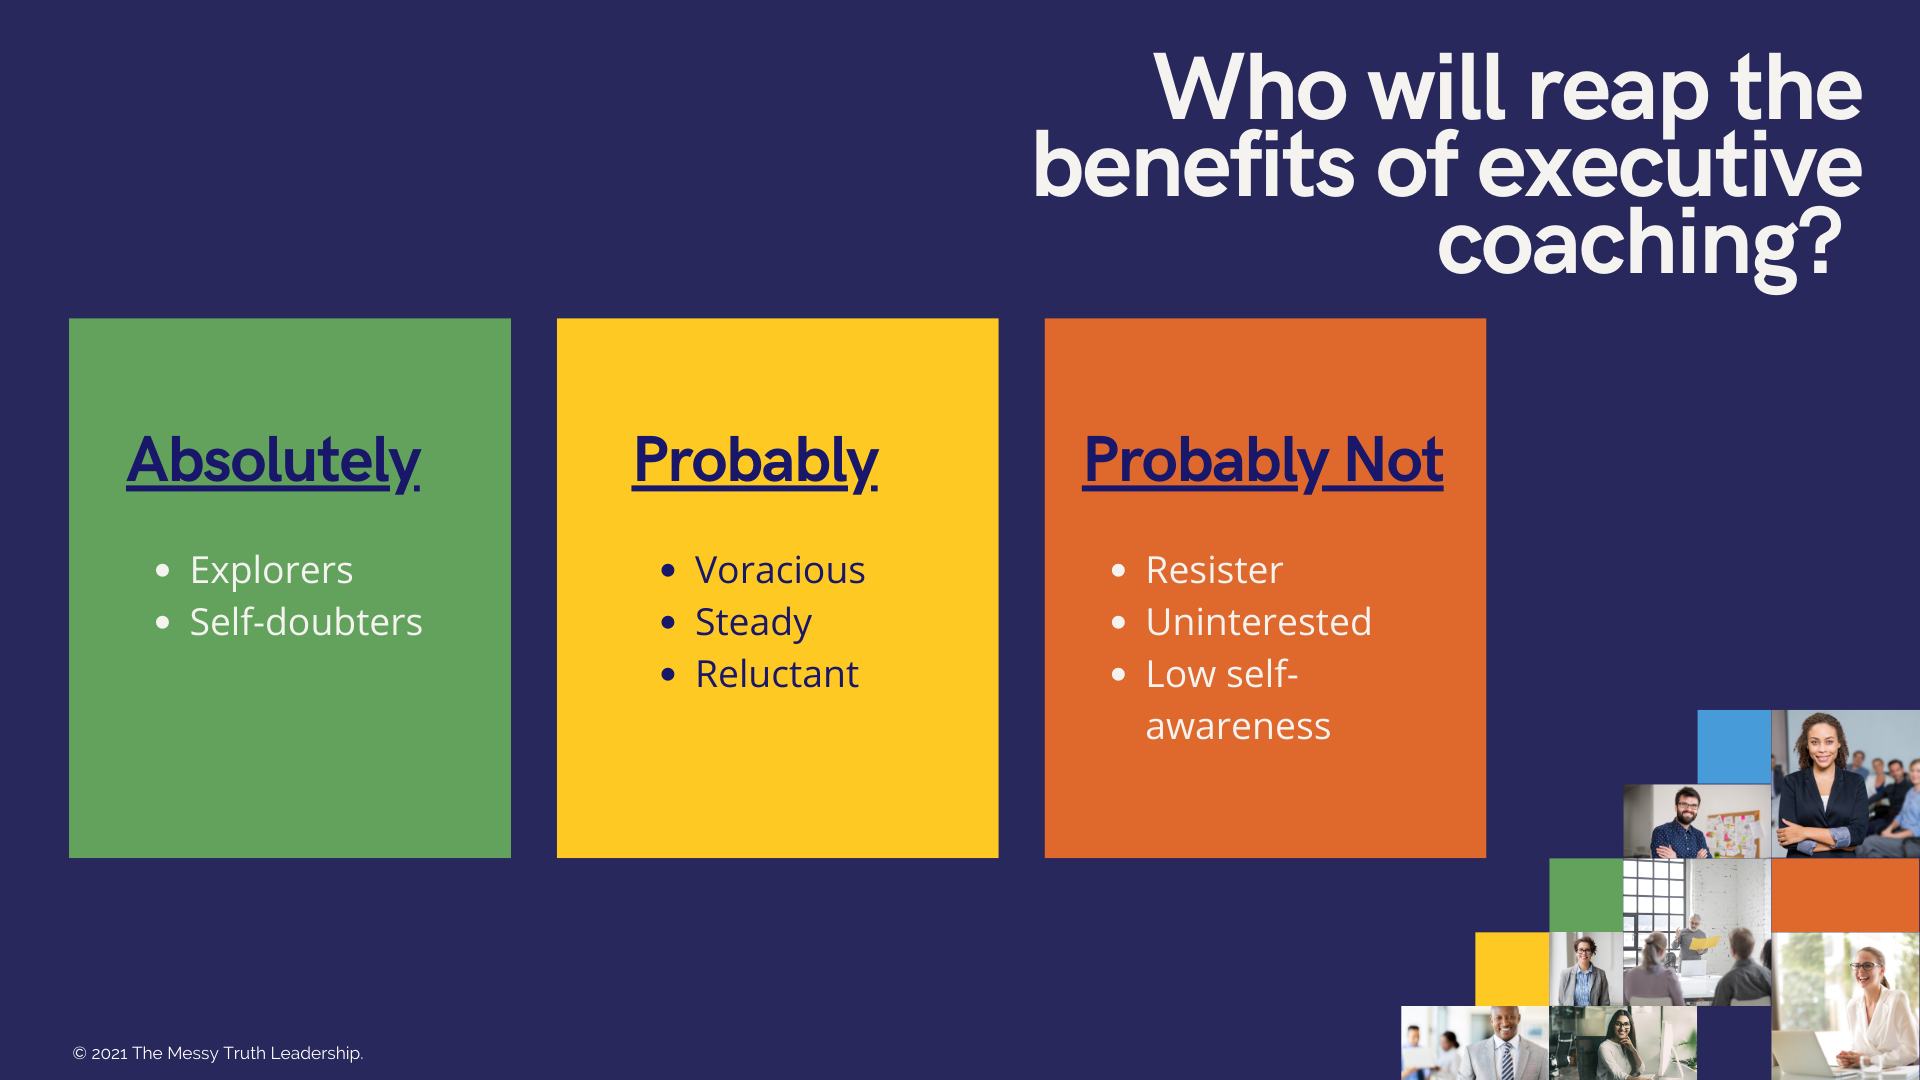 Who will benefit from executive coaching?